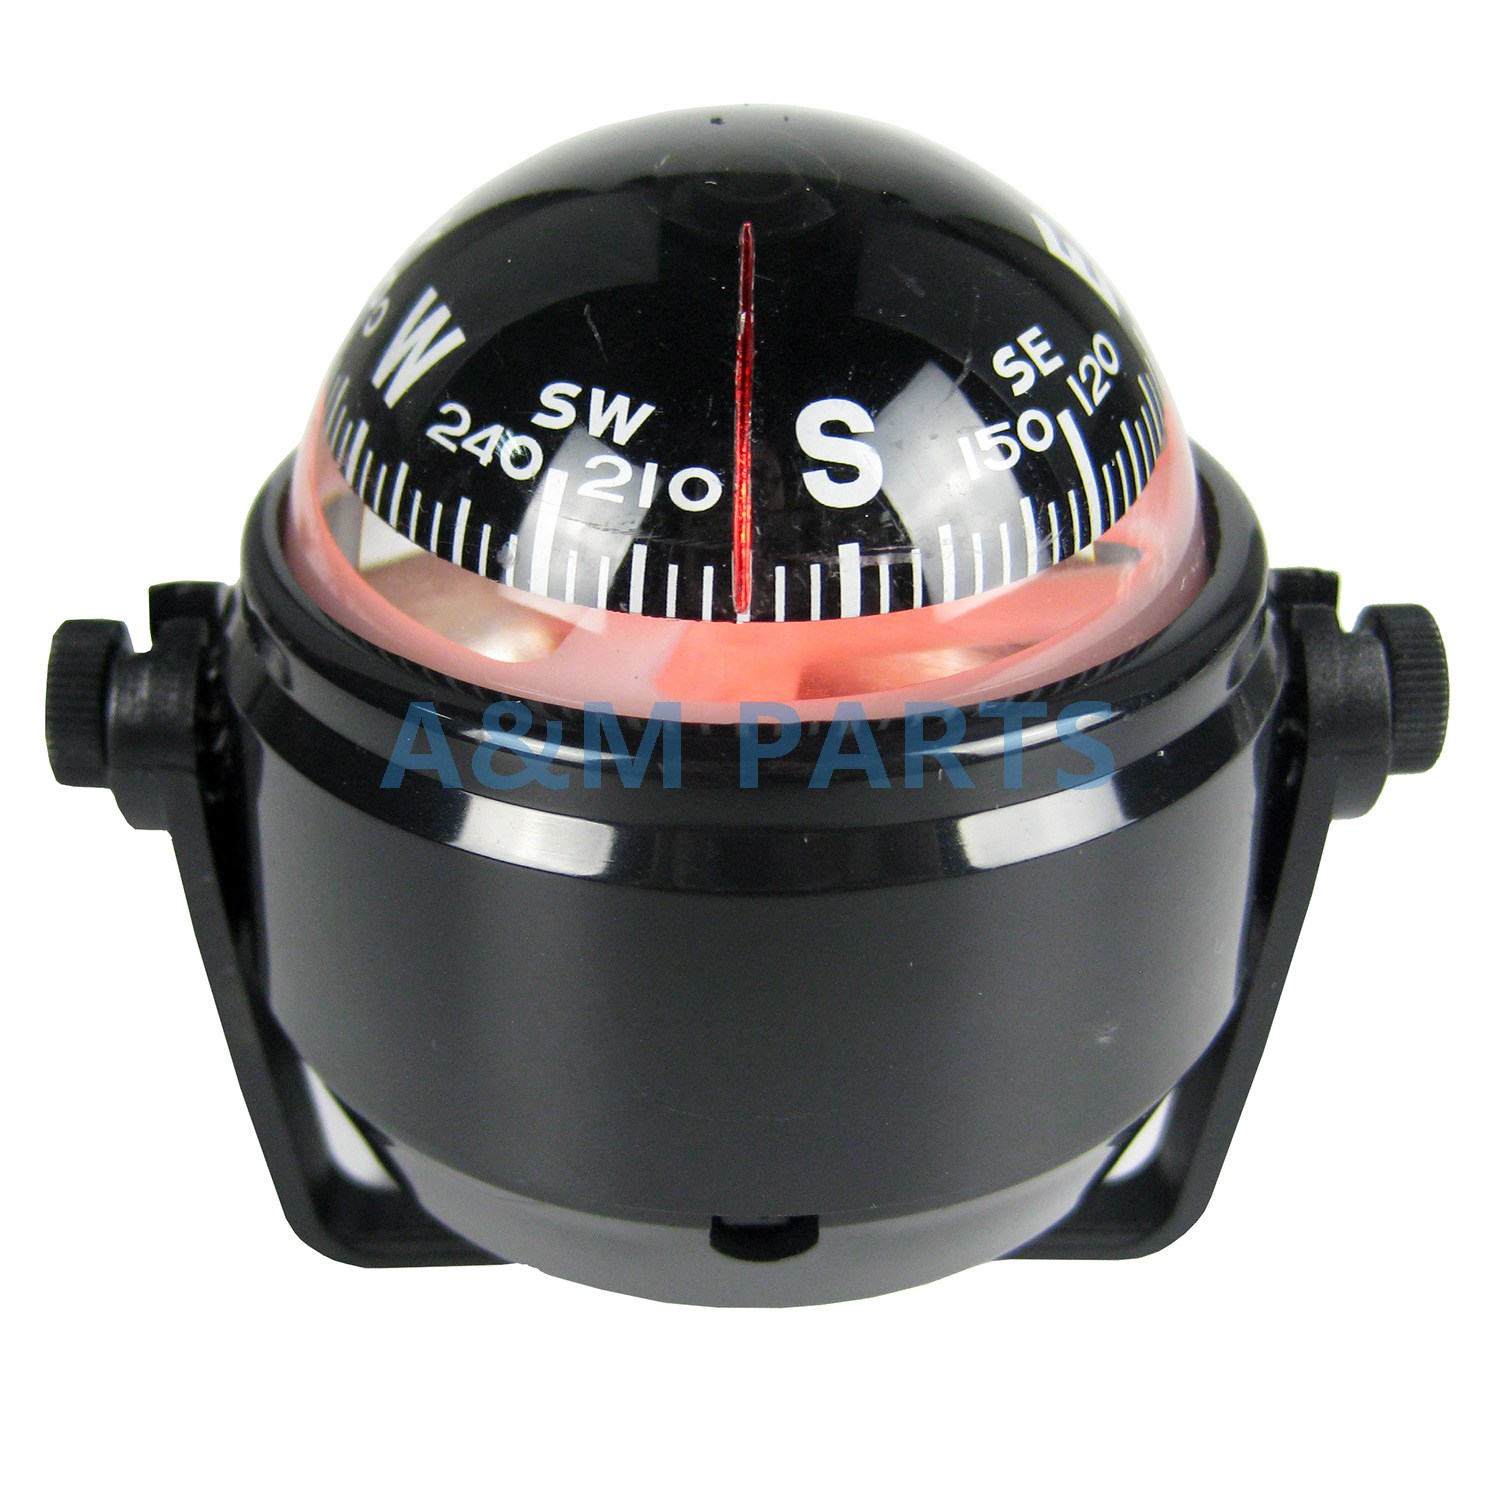 Marine LED Navigation Compass for Sail Ship Vehicle Car Boat Black Electronic